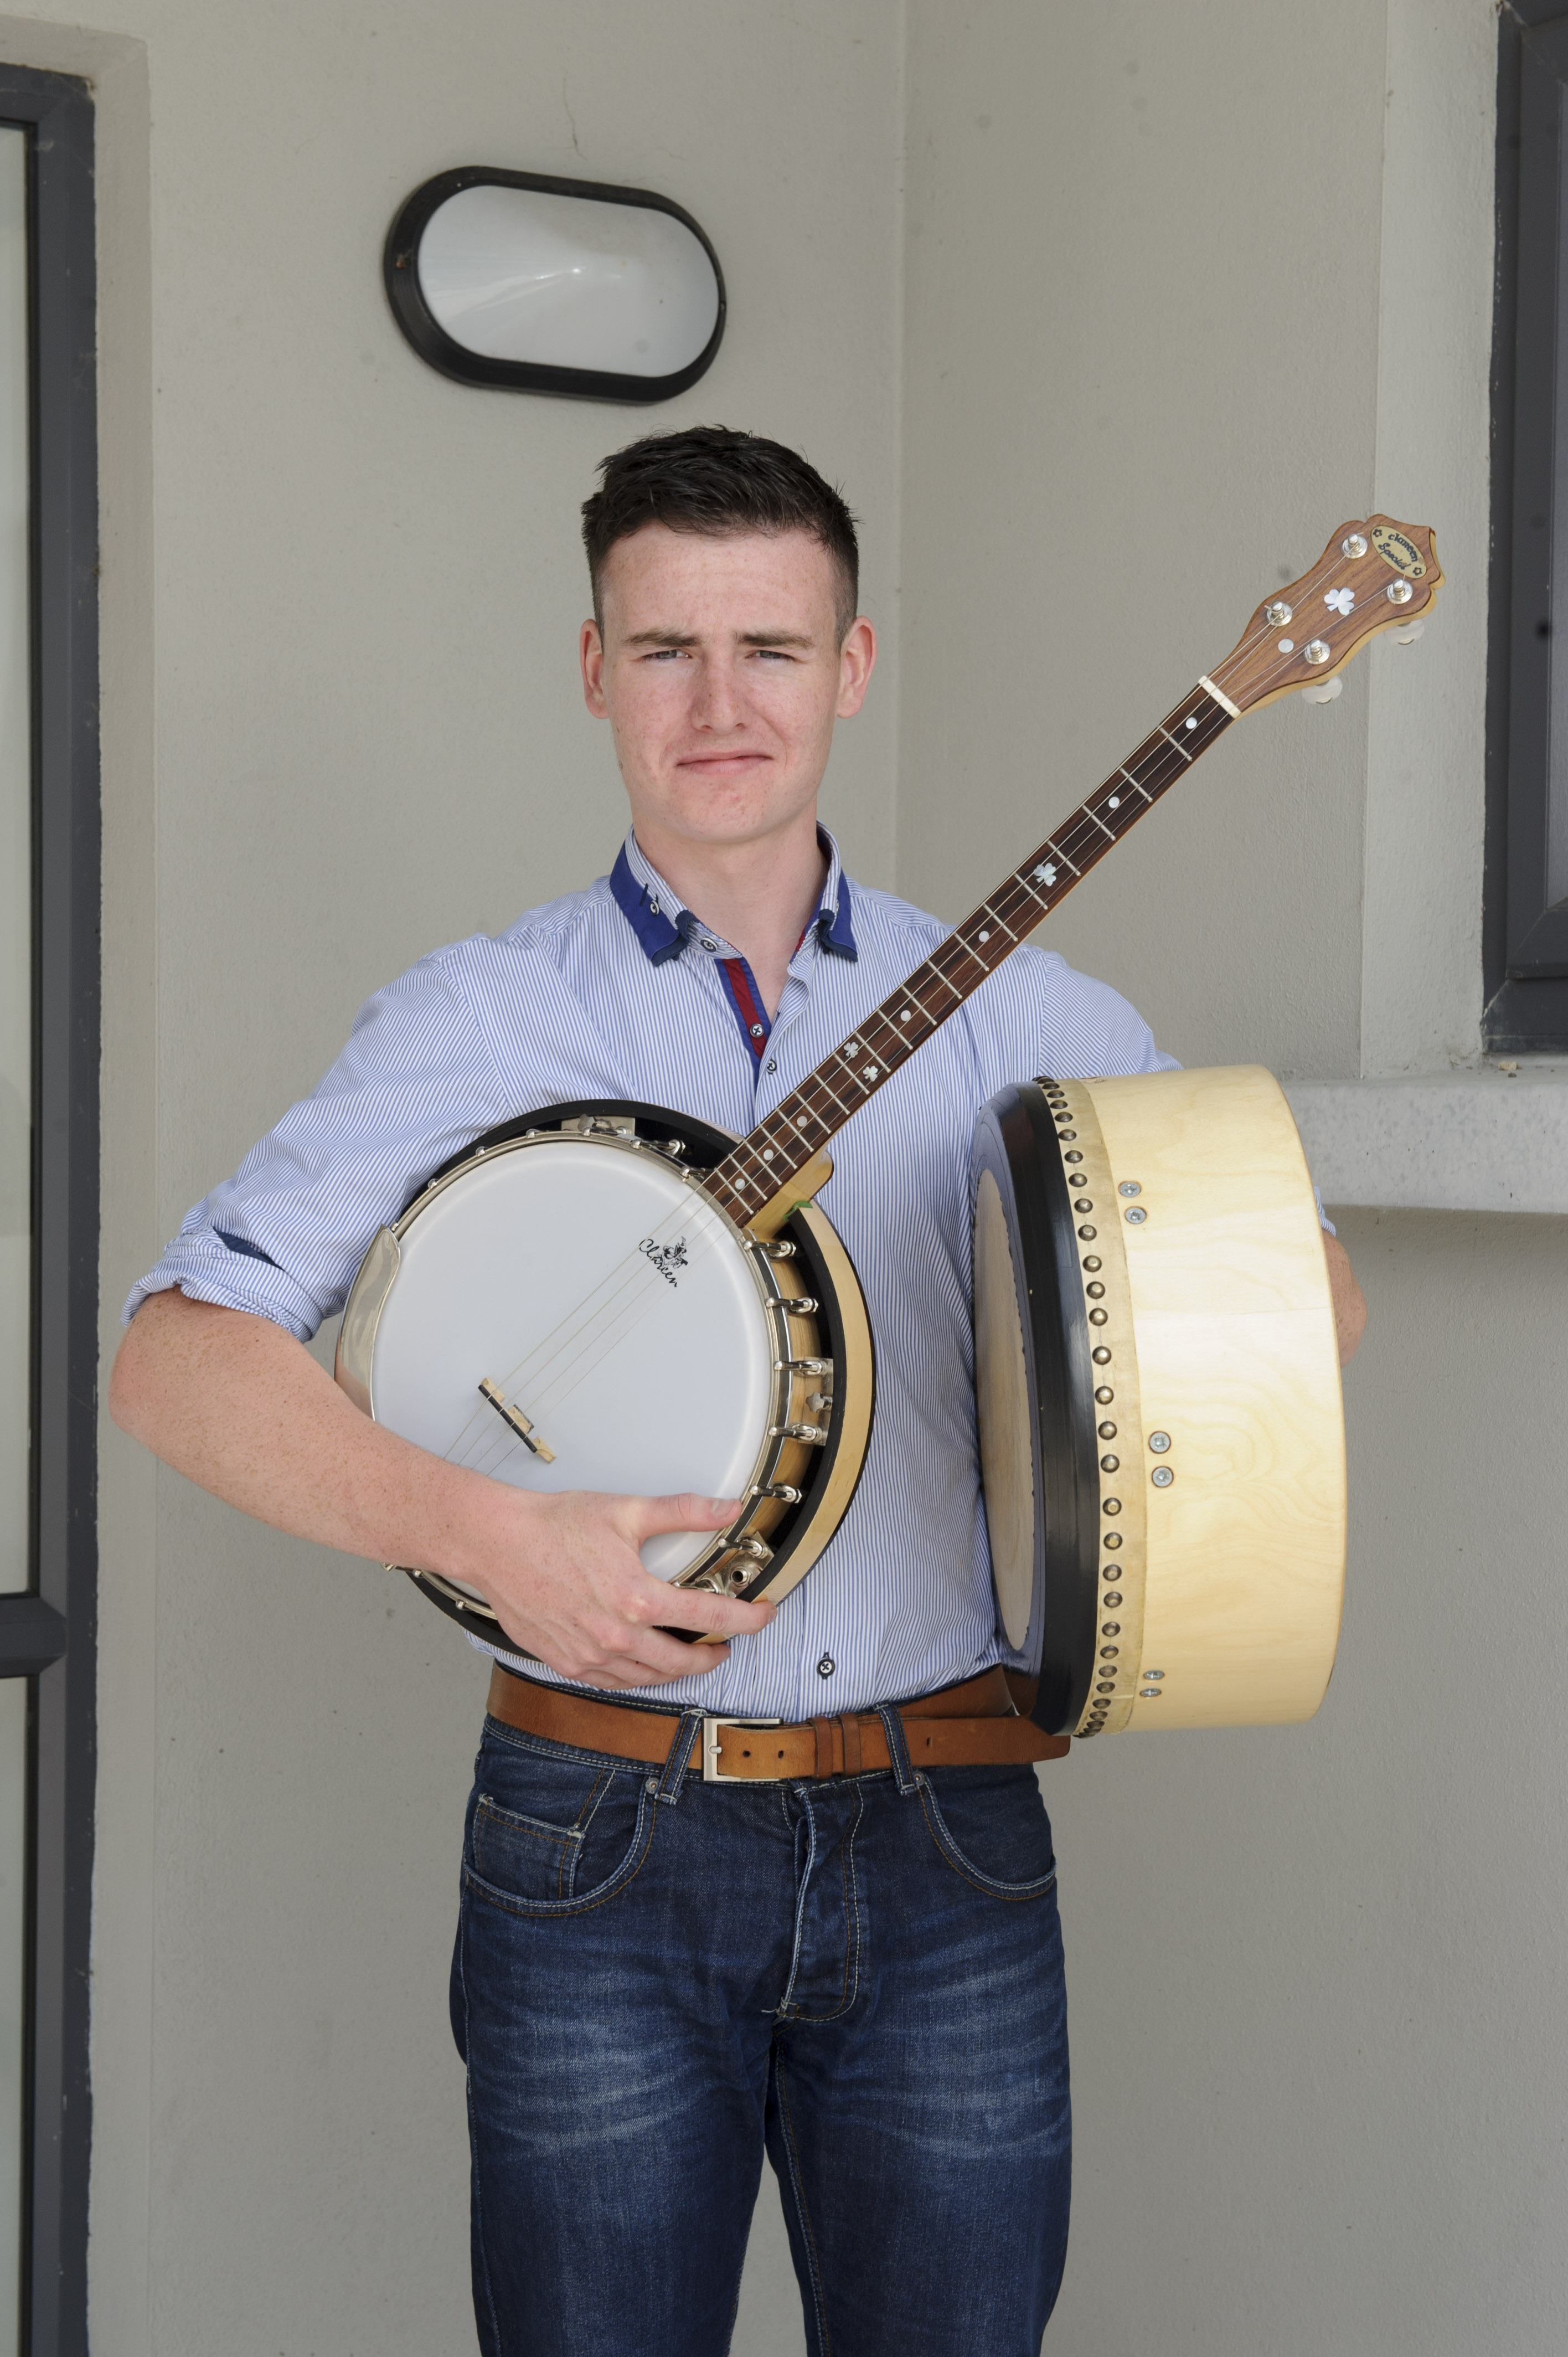 Fintan Hackett from Clogher Valley CCE, who was the winner of the U-18 Banjo and Bodhrán competitions. ©Rory Geary/The Northern Standard